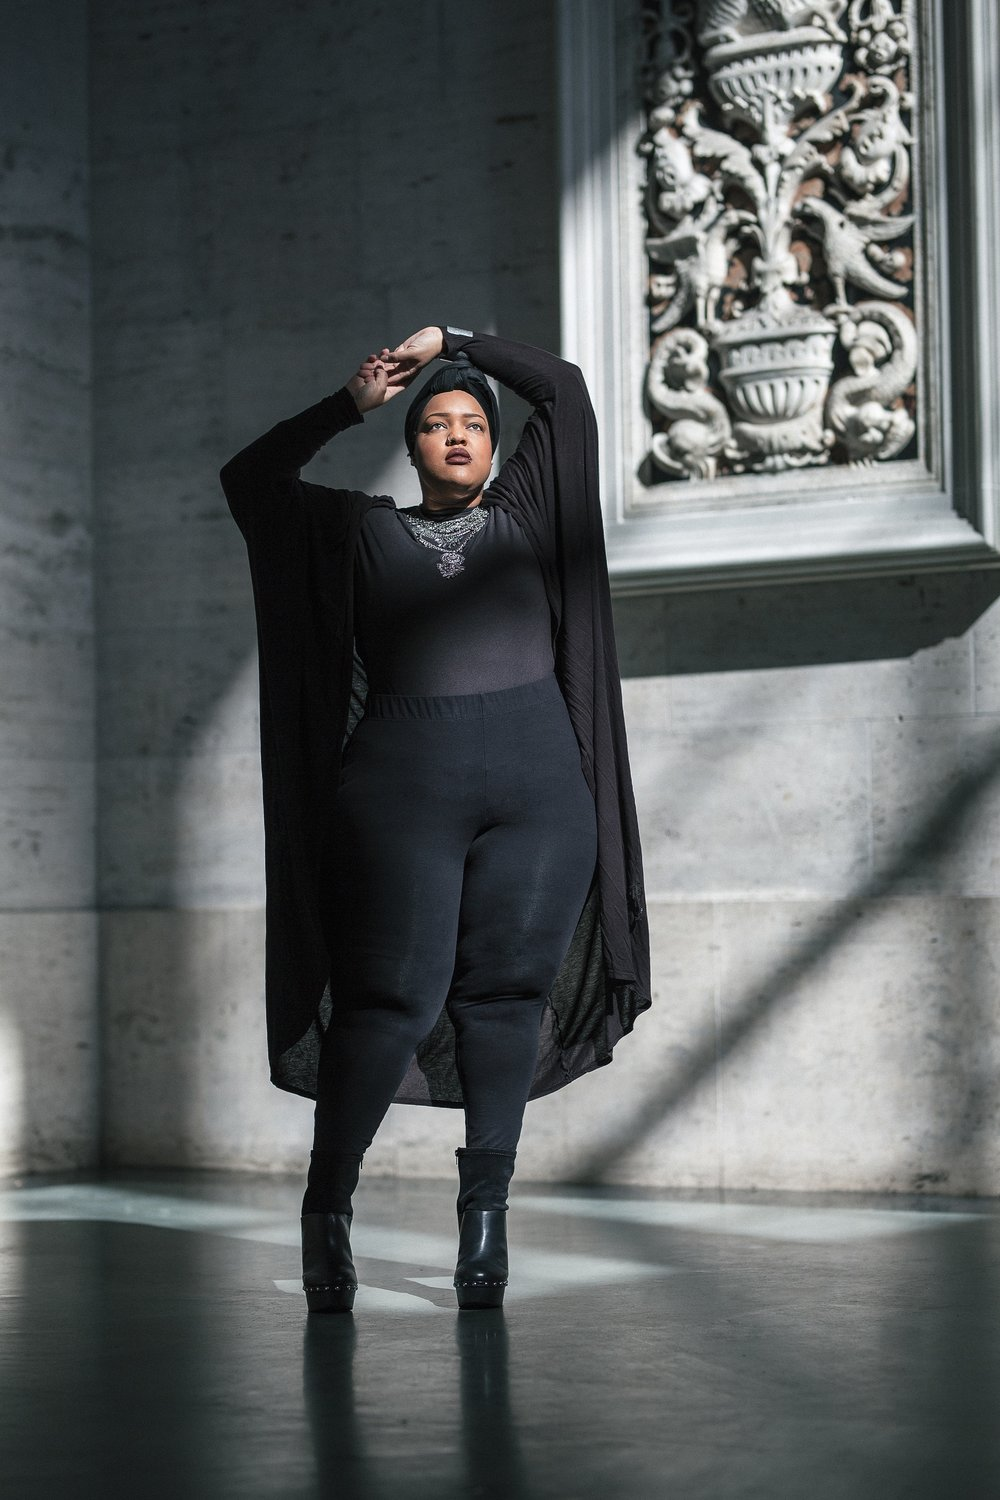 Cape/Jacket: Forever 21 + Leggings: Lane Bryant + Shoes: Torrid